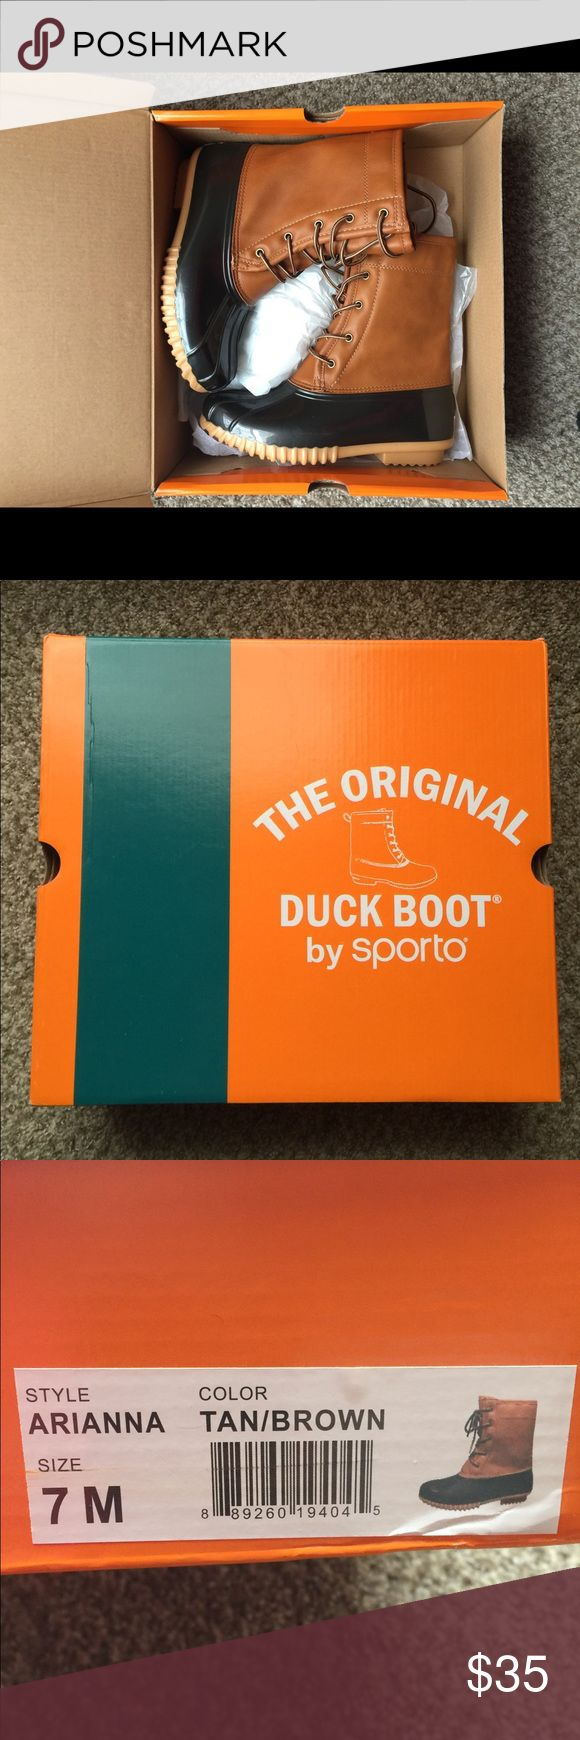 The Original Duck Boot NWT. The tag is not attached but I still have it. Never worn outside as you can see from the photo of the bottom of the boots. Nothing wrong with them, just too big for me. Can be sent with original box and tags if you'd like. Size 7M Sporto Shoes Winter & Rain Boots